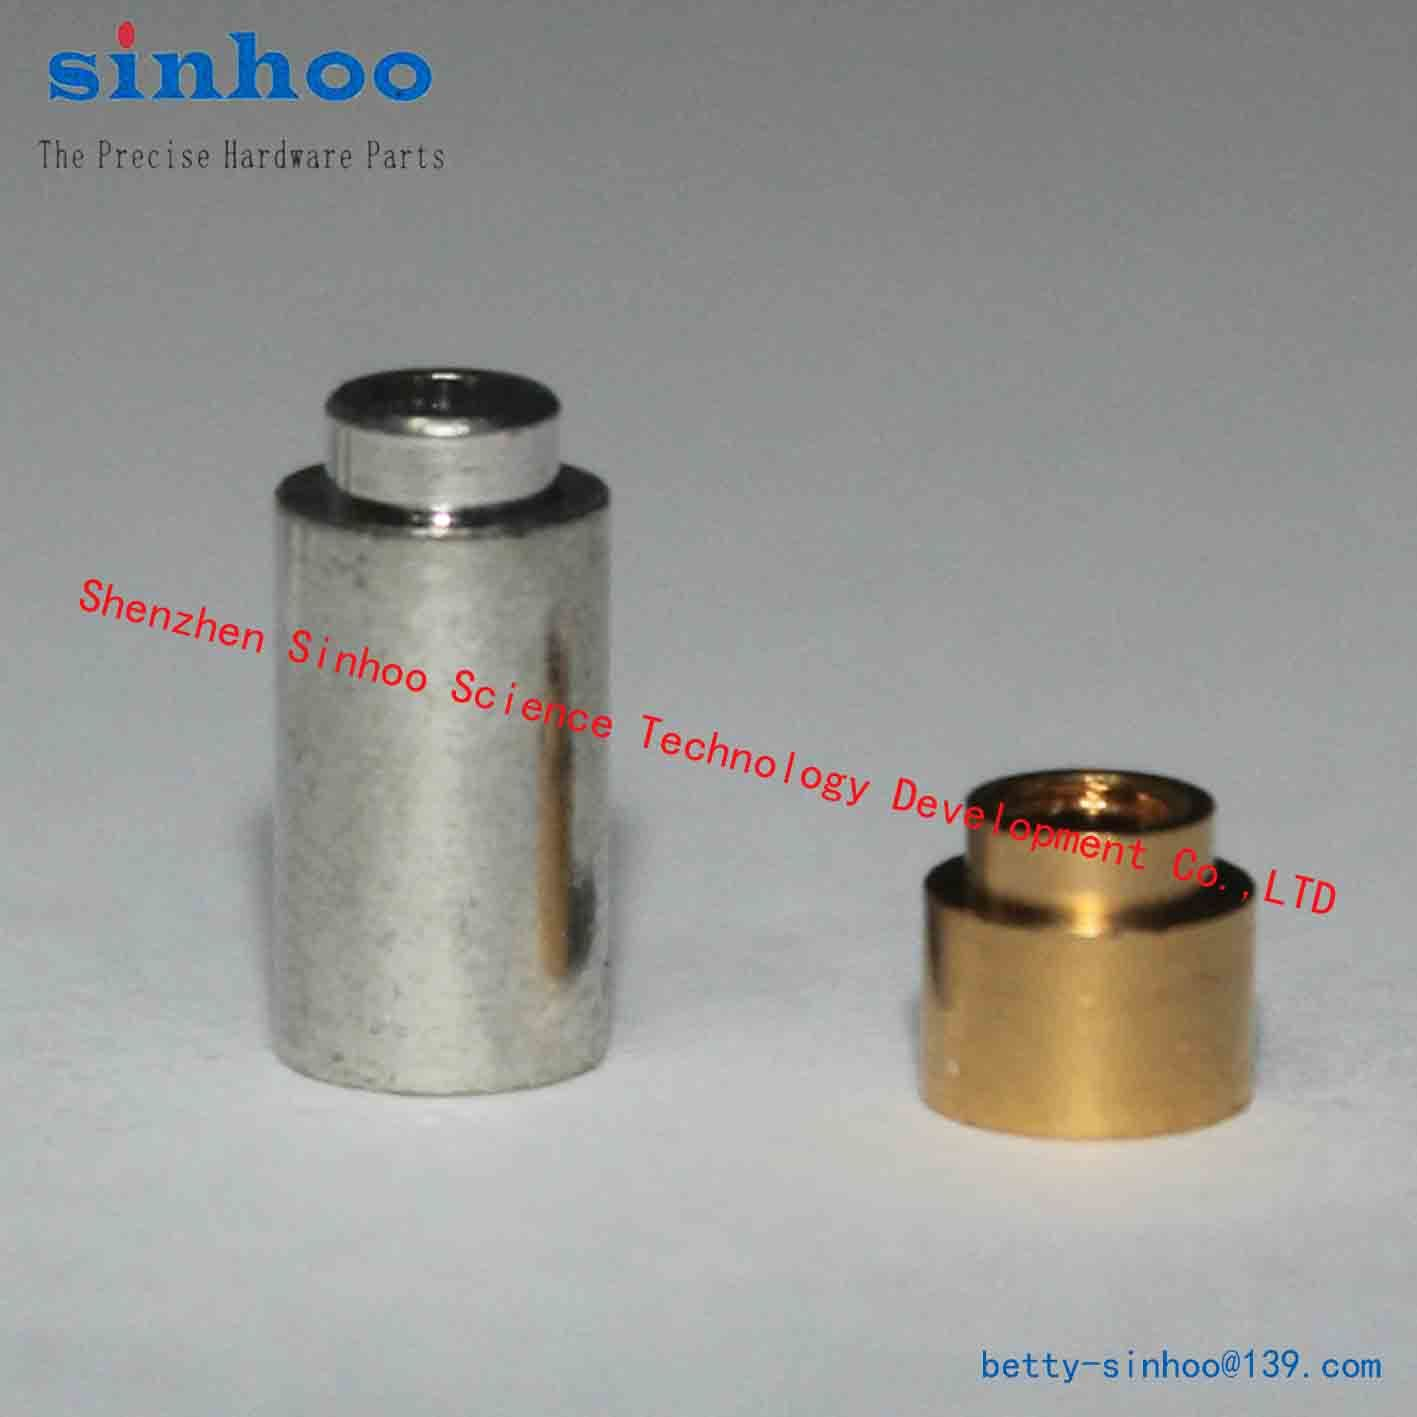 SMT Nut, Weld Nut, Smtso-M2.5-4et, Reel Package, Solder Nut, Standoff, Brass, Tape